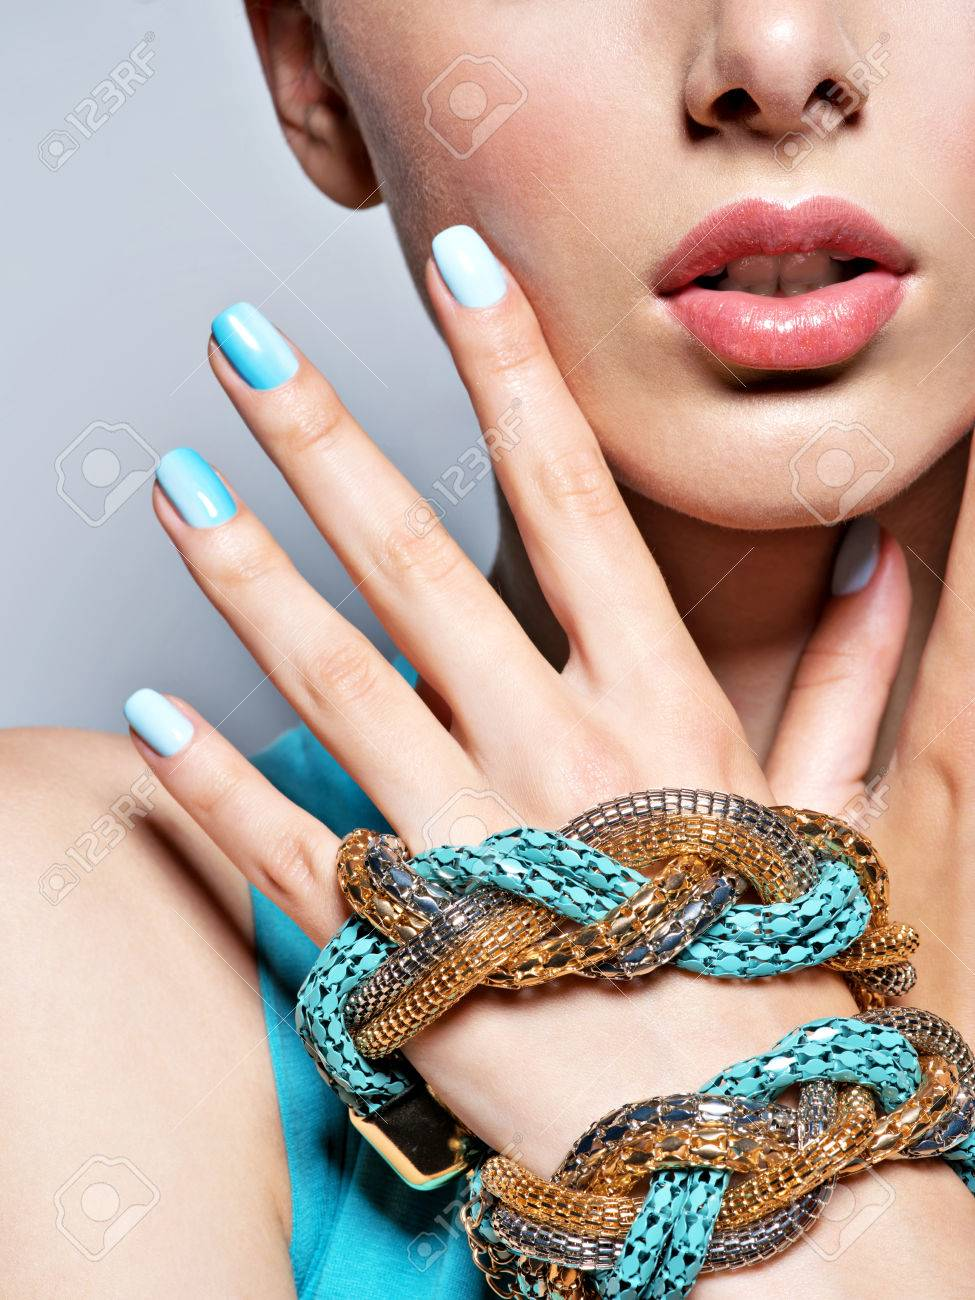 woman hands nails manicure fashion blue jewelry. Female hands with blue fingernails - 54178190